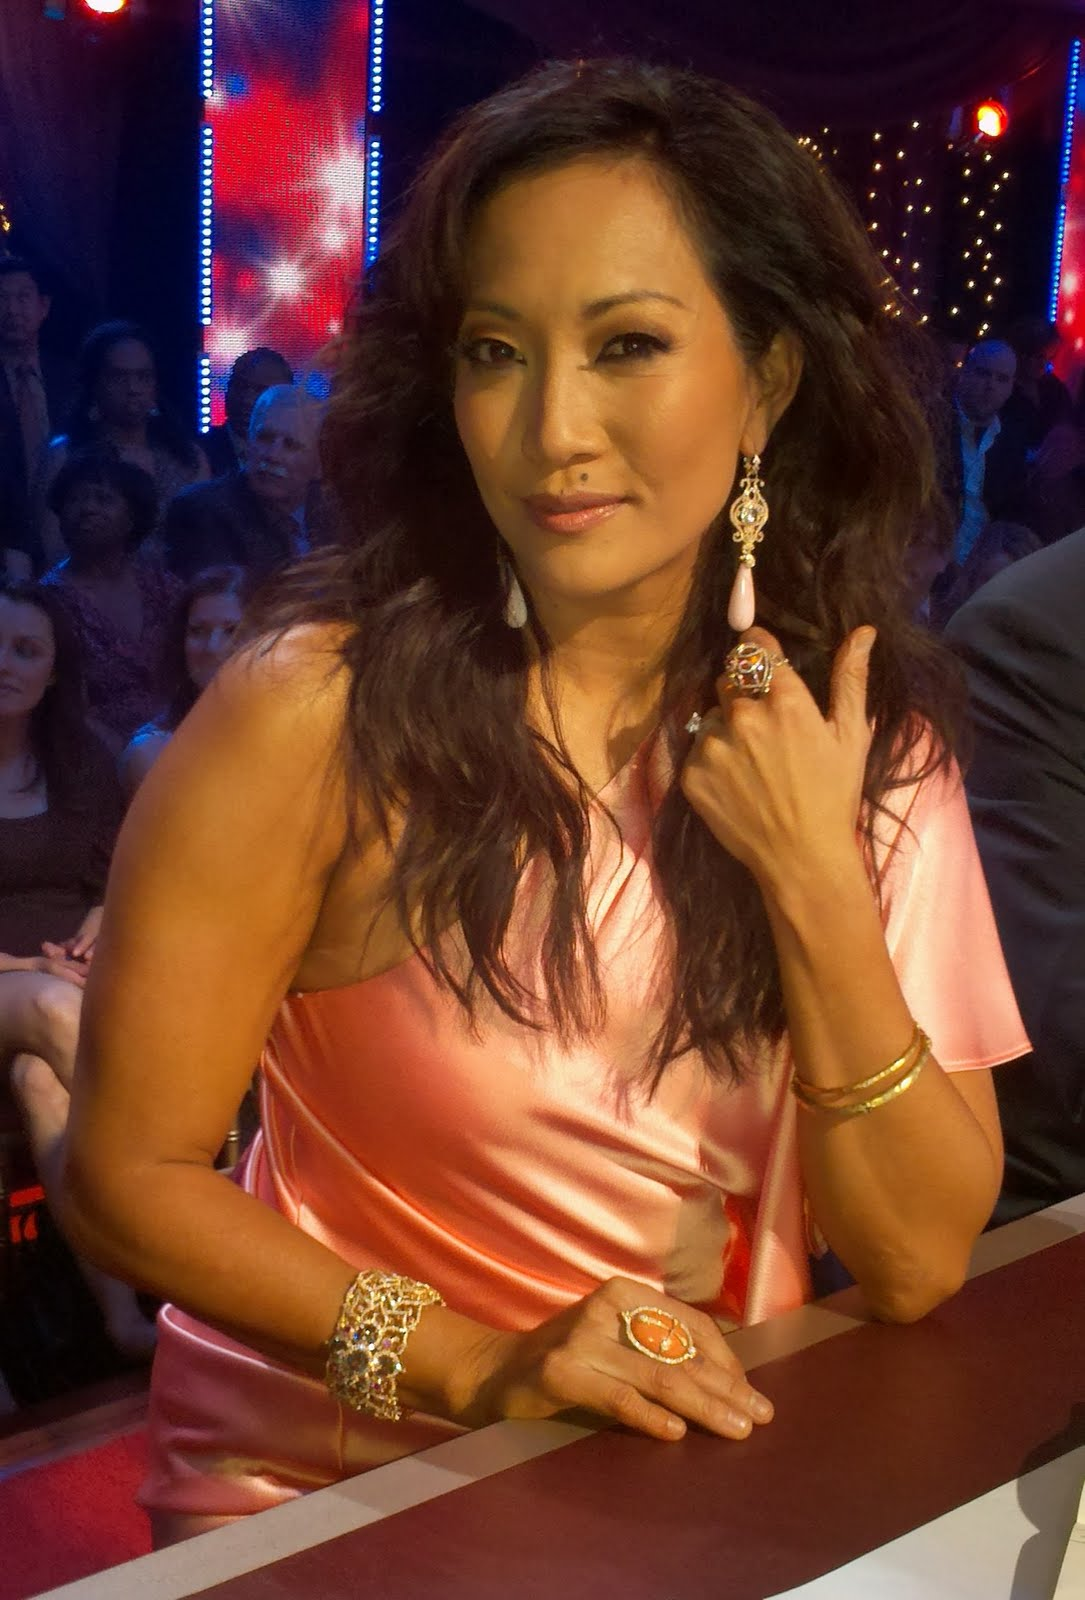 Carrie Ann Inaba - Wallpaper Gallery